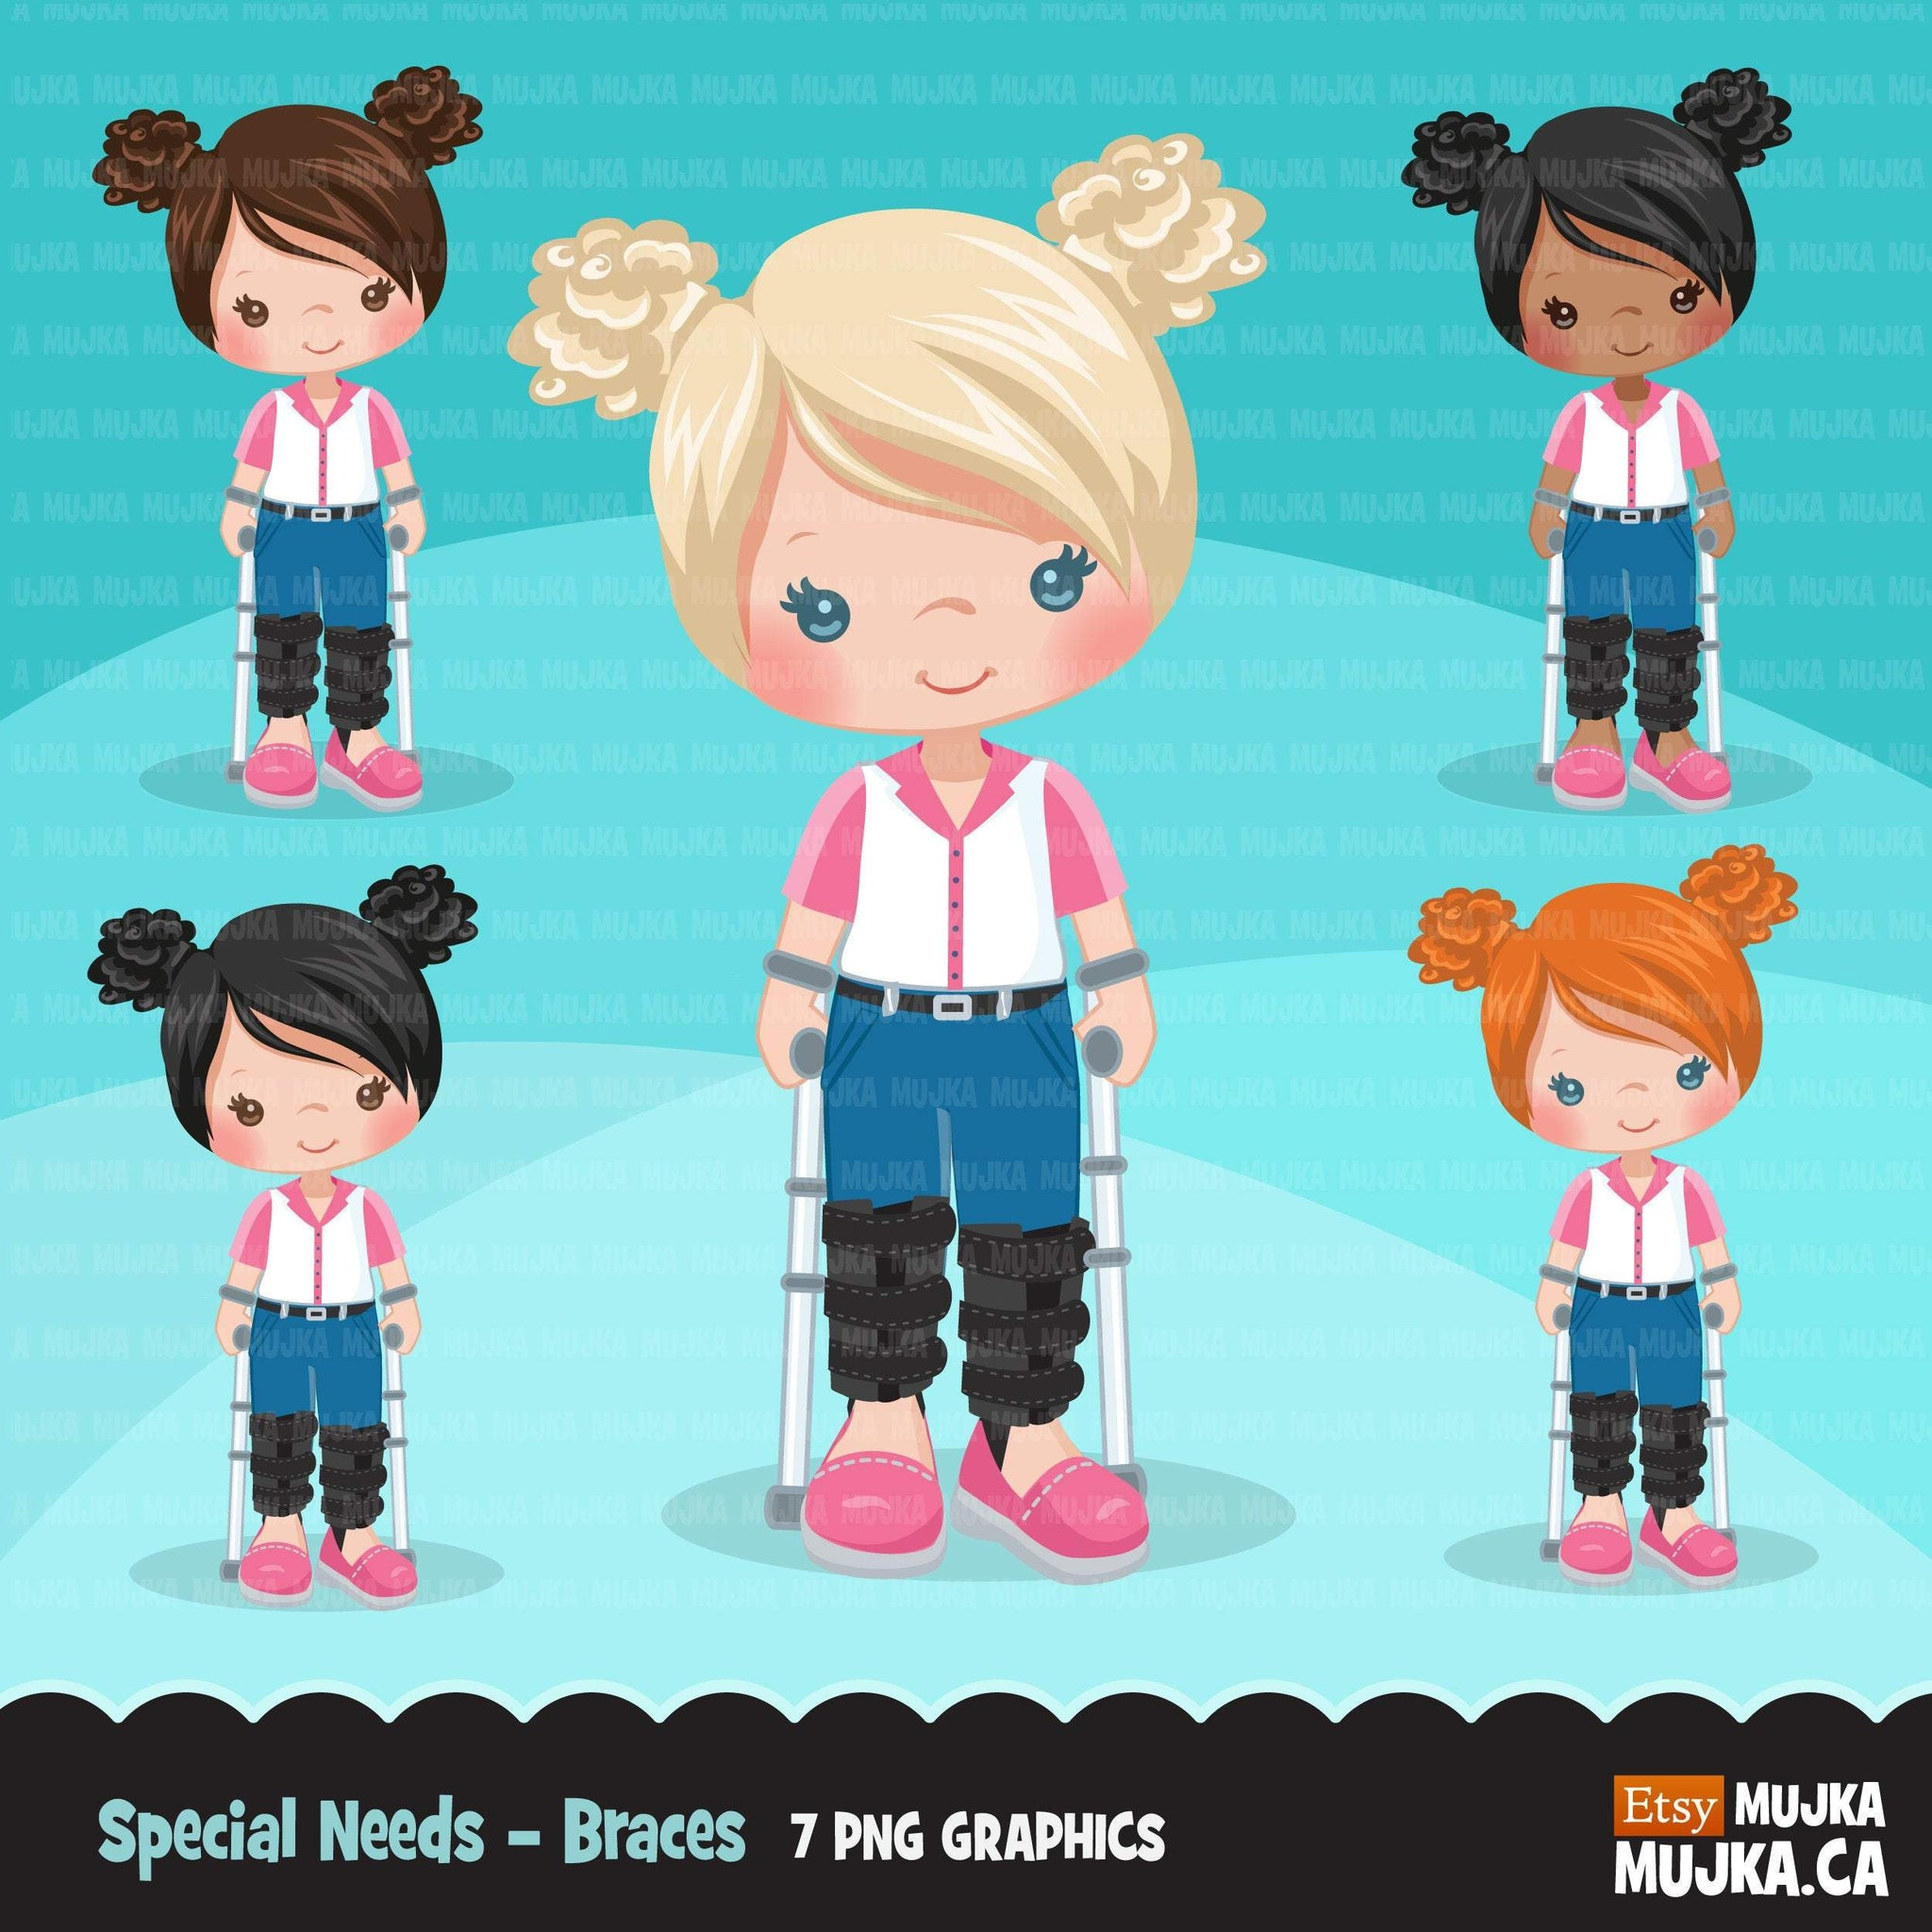 Special Needs leg braces clipart, disability, girl characters with walkers, african american, card making, planner sticker, disable clip art